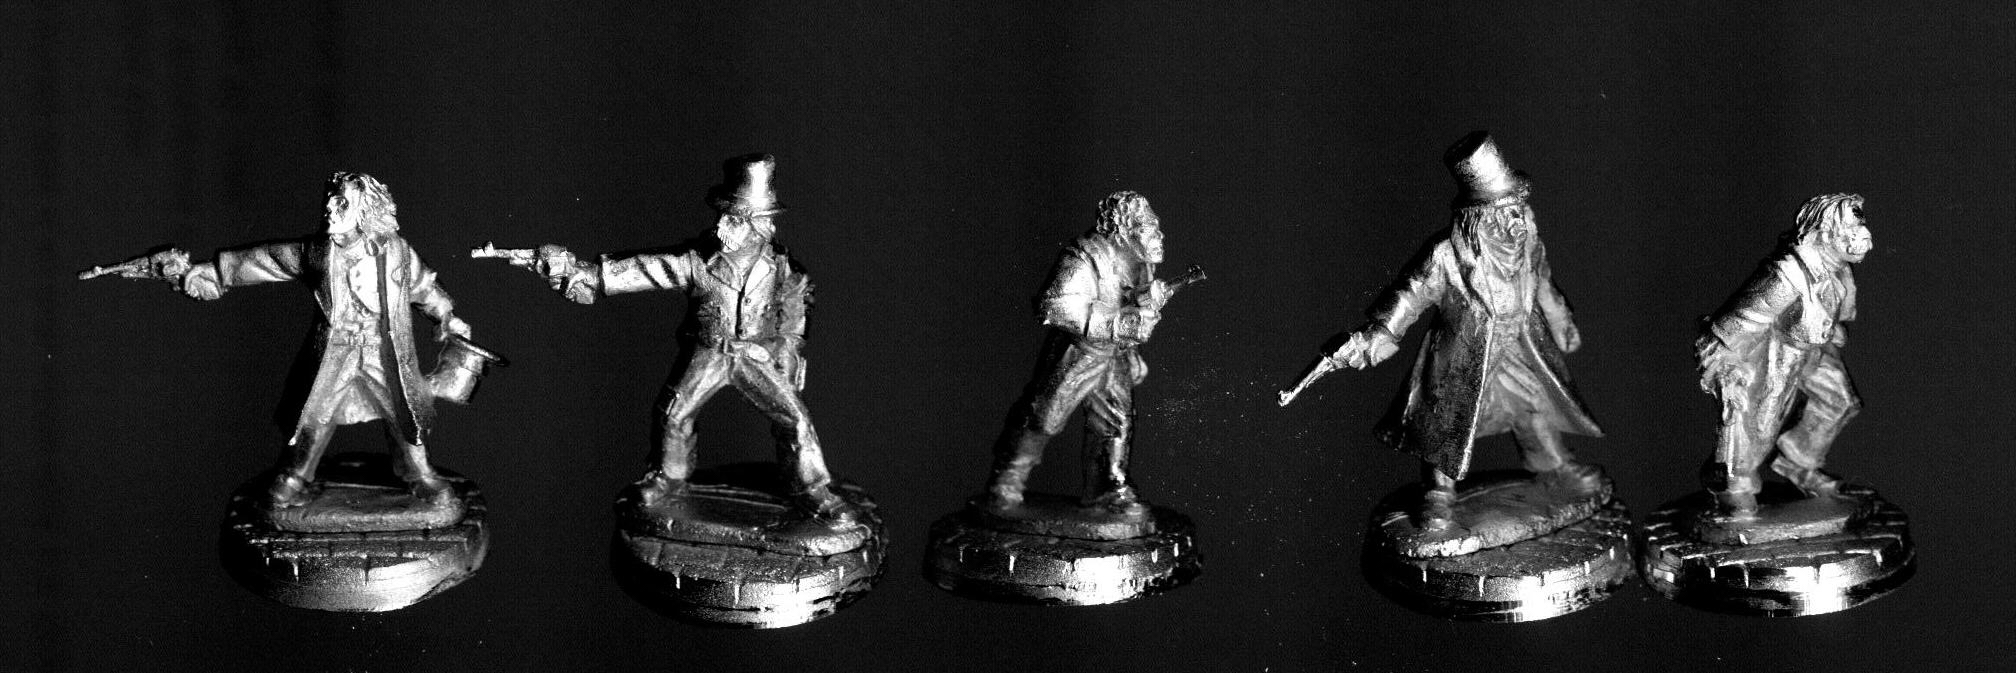 BG-VA04  Gangsters with Pistols (5)